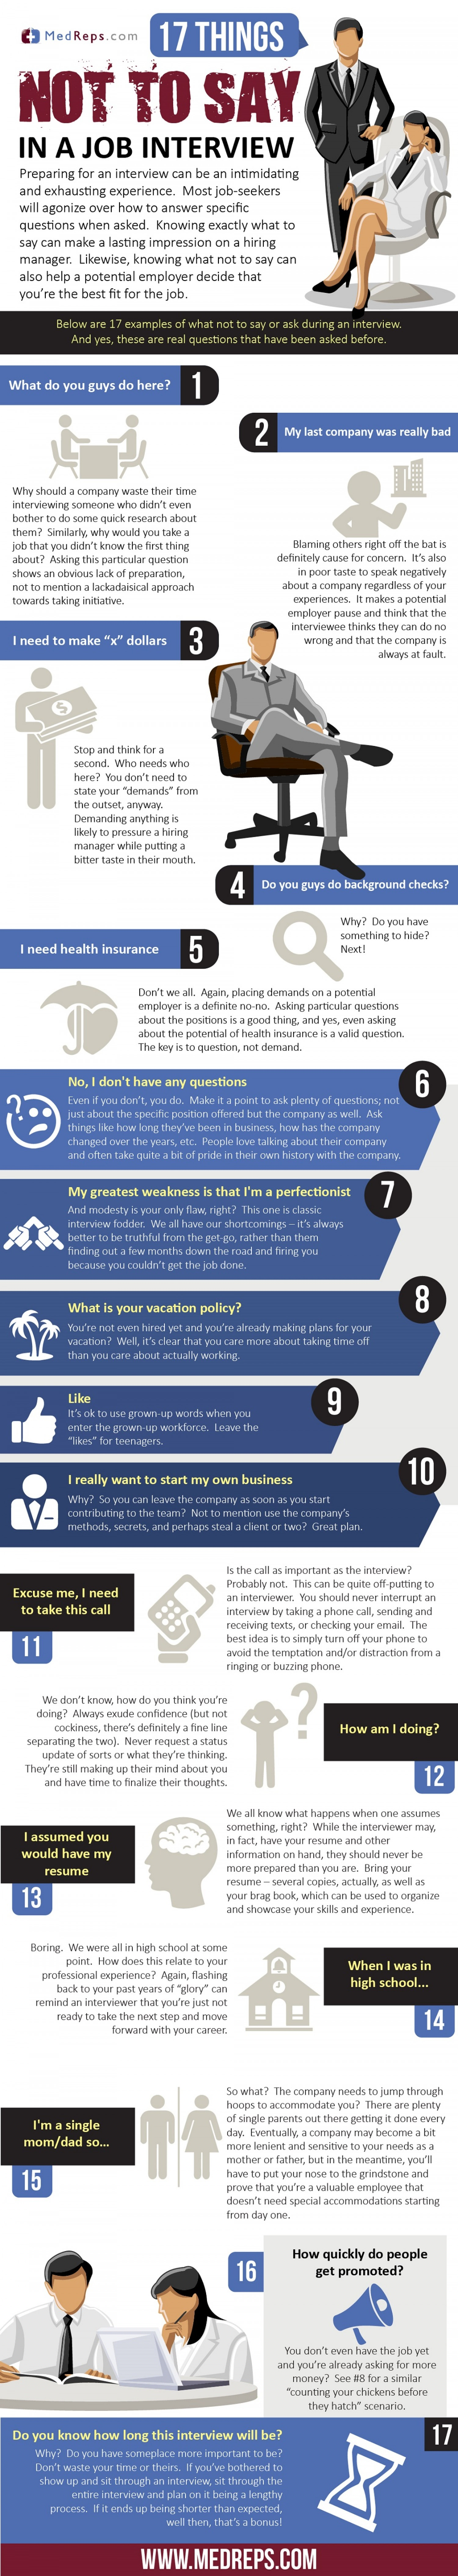 17 things not to say in a job interview infographic - What To Say In An Interview What Not To Say In An Interview